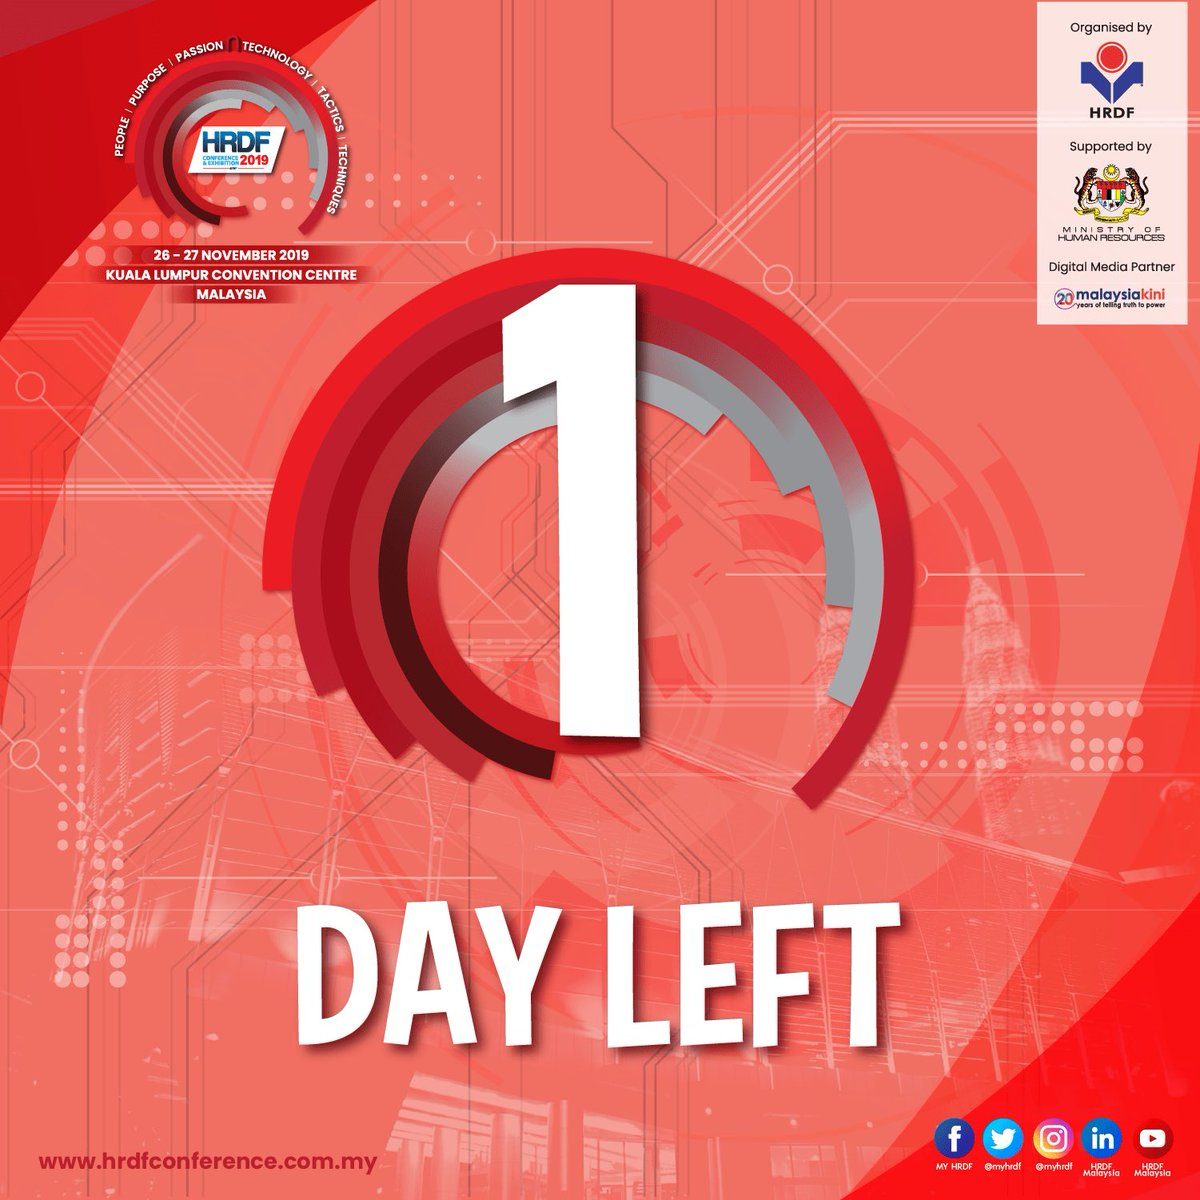 TICK TOCK!  The HRDF Conference & Exhibition 2019 is happening tomorrow!  Think it's already too late to get your tickets? GOOD NEWS! You can register on-site at the Kuala Lumpur Convention Centre tomorrow!  Where else? Visit https://t.co/KKS4PPVlW3 to know more. https://t.co/SGP73UqO9D